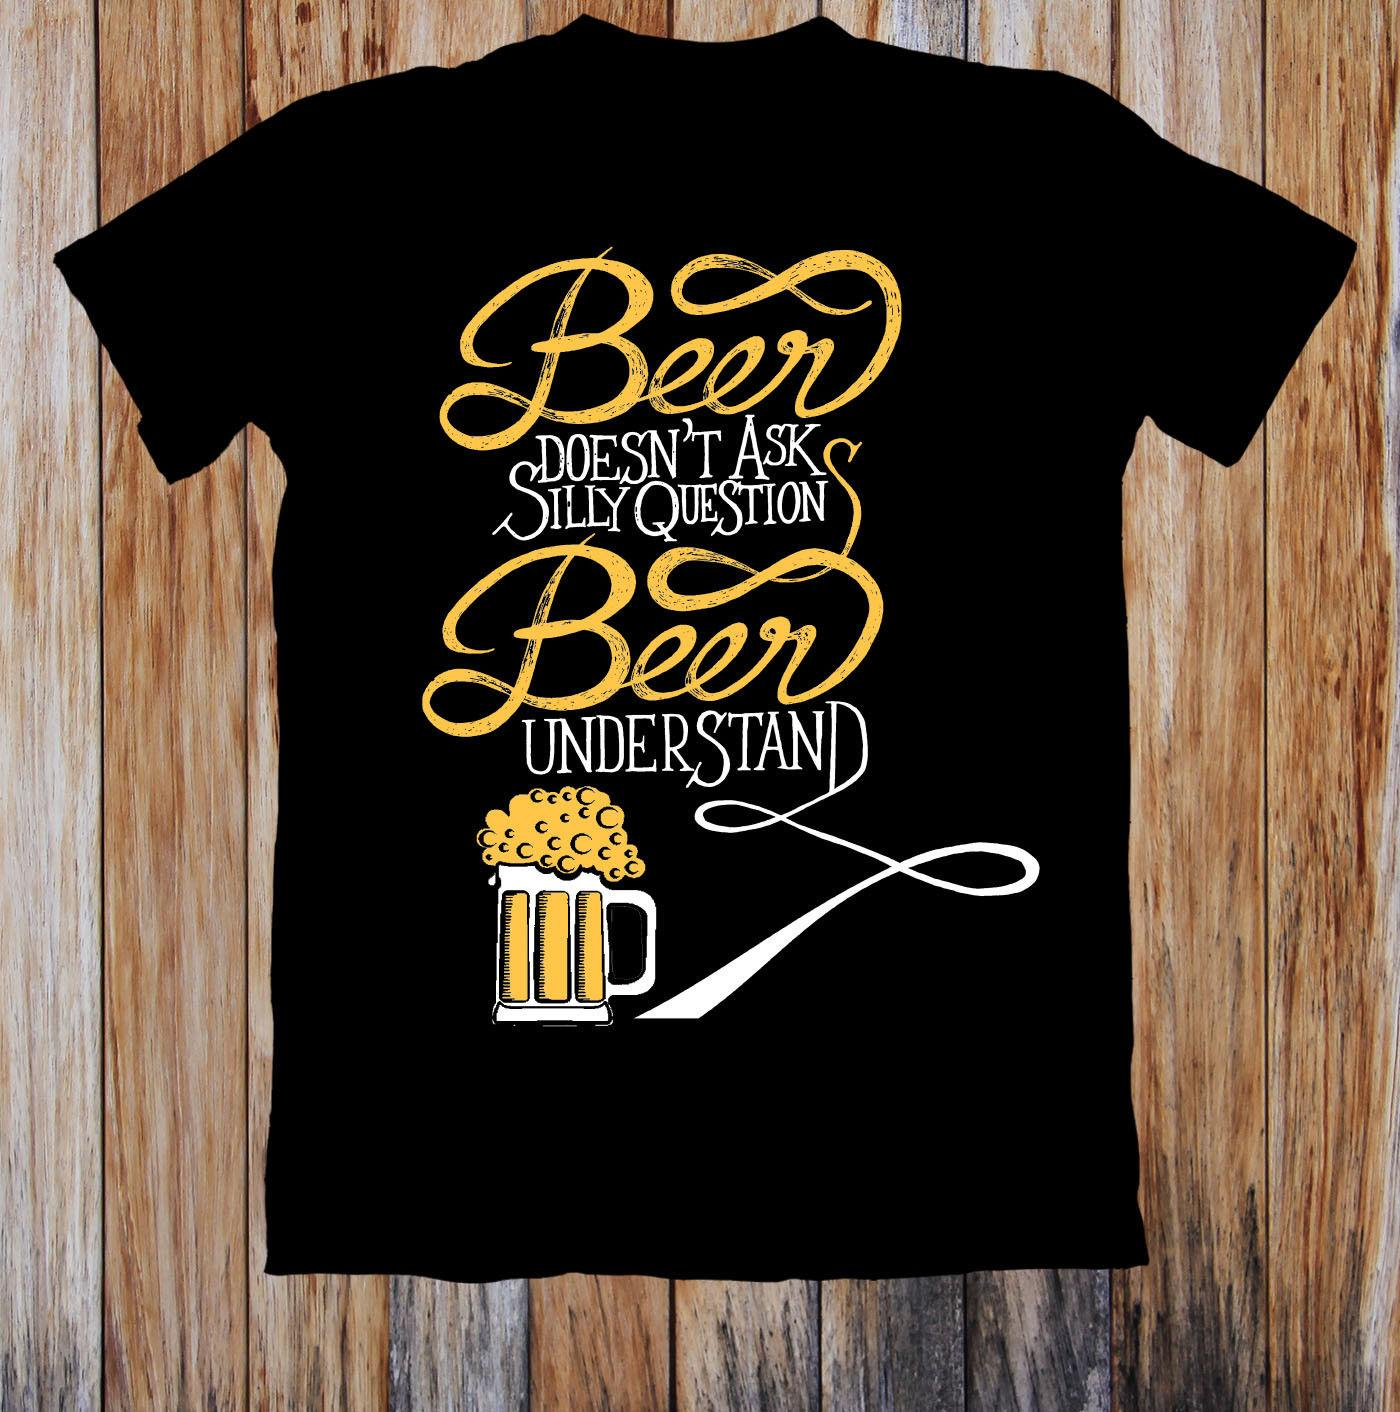 4d60b47f11 DOESN'T ASK SILLY QUESTION BEER UNDERSTAND UNISEX T-SHIRT The New Short  Sleeve T-Shirt Funny Print Men Short Sleeves 2018 New Brand